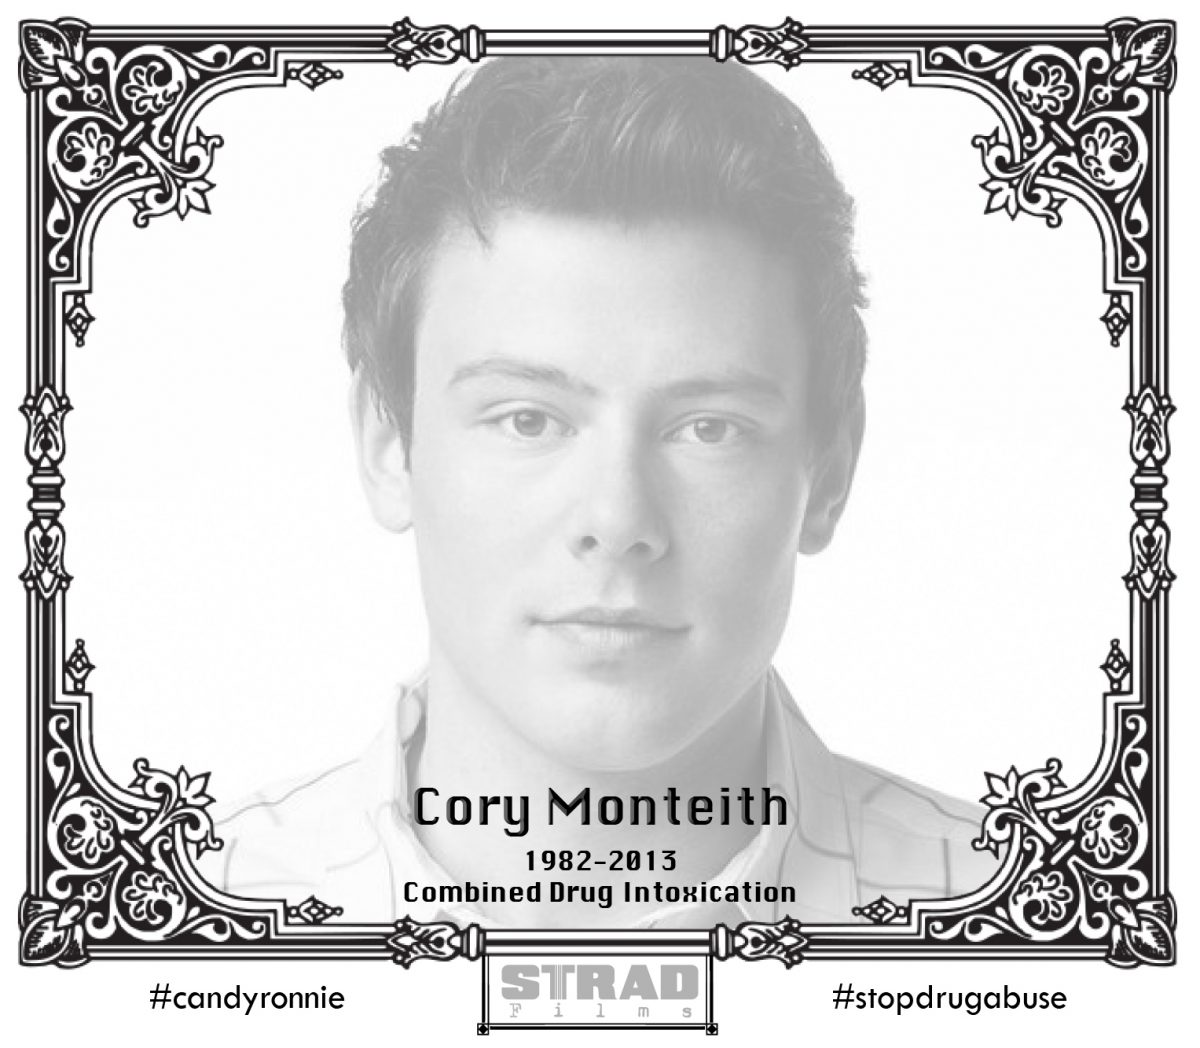 Actor_Cory_Monteith